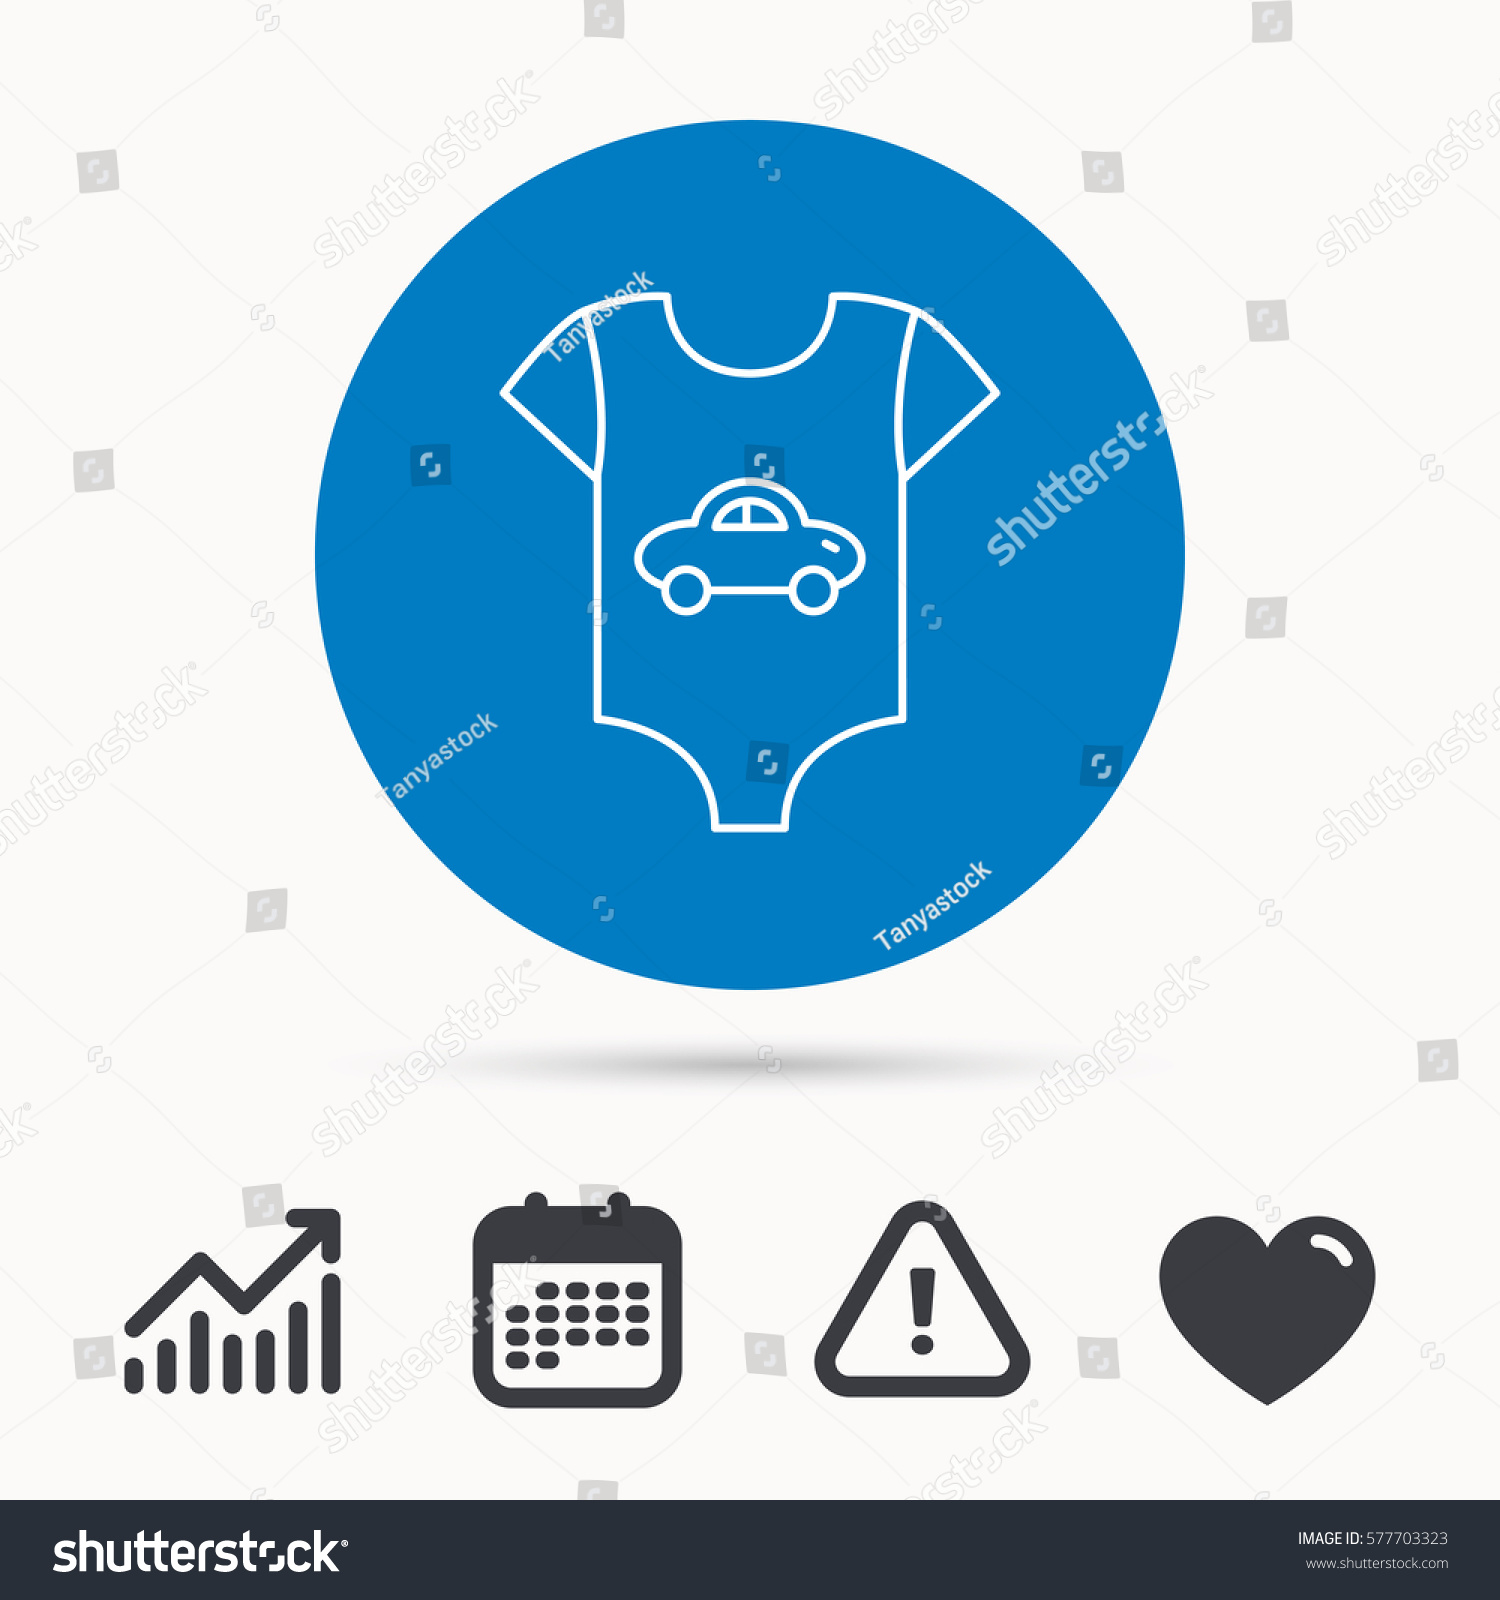 Newborn clothes icon baby shirt wear stock vector 577703323 newborn clothes icon baby shirt wear sign car symbol calendar attention sign geenschuldenfo Choice Image